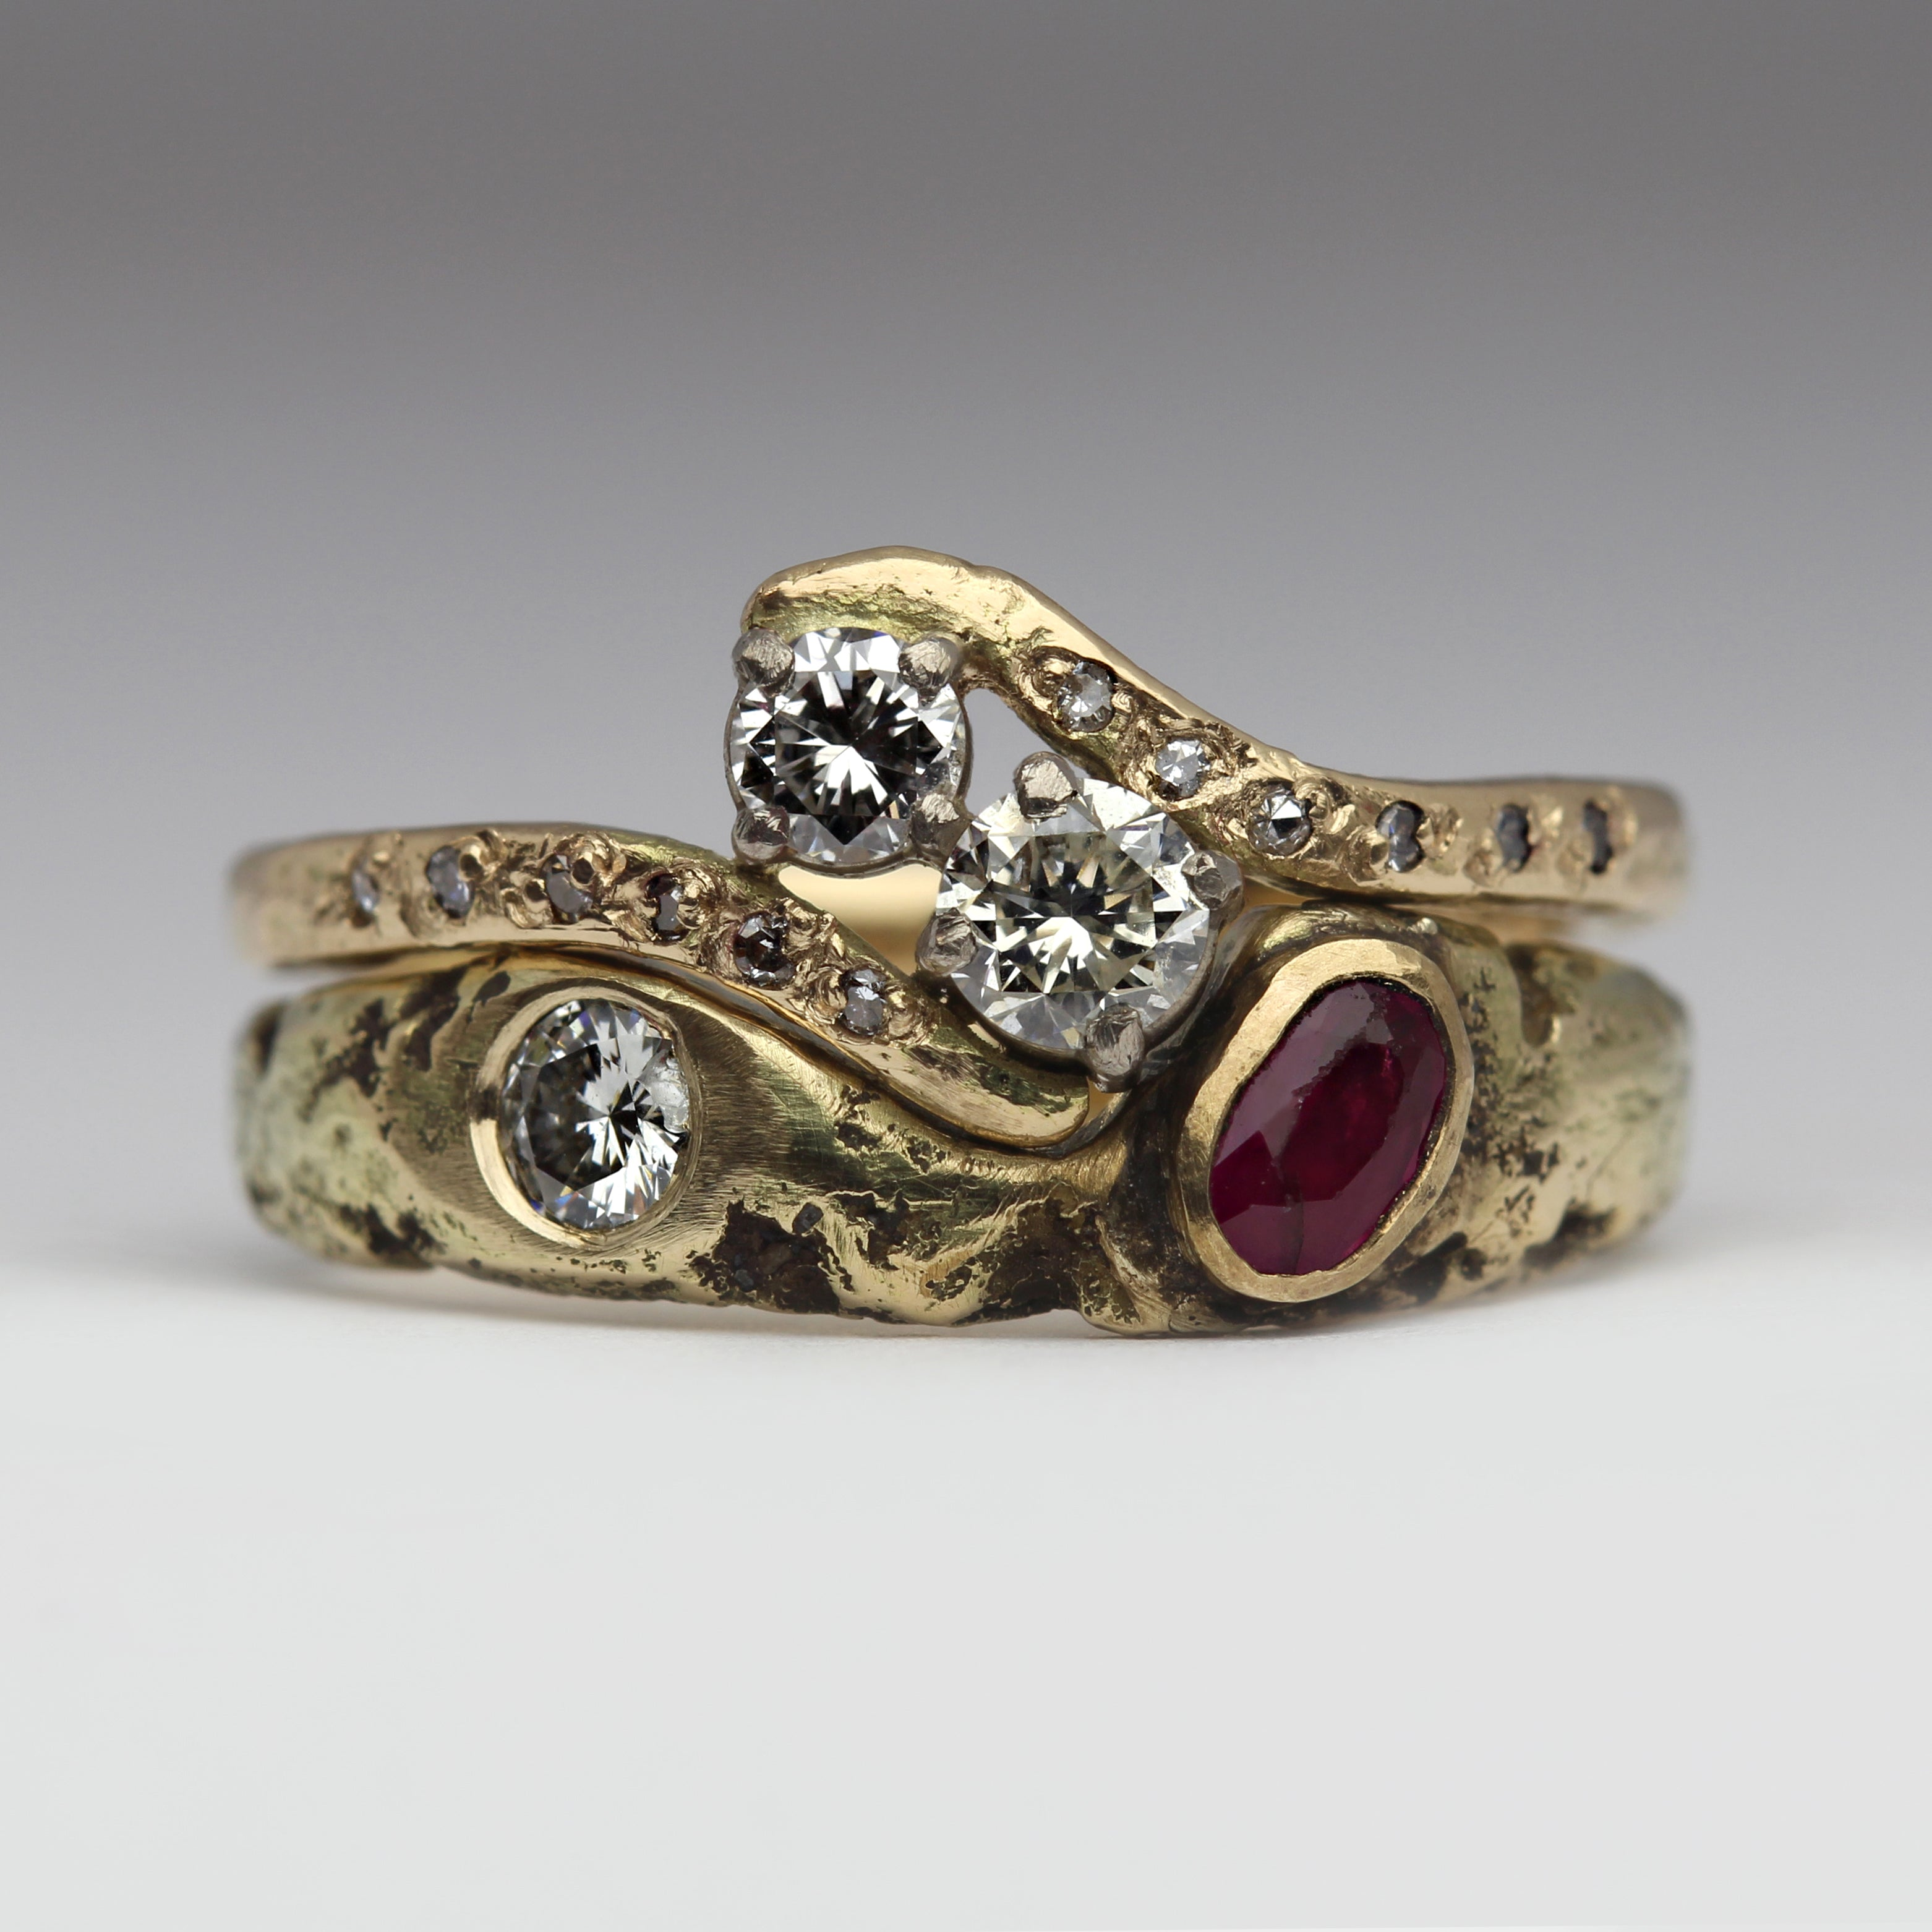 Asymmetrical contemporary wedding and engagement ring set